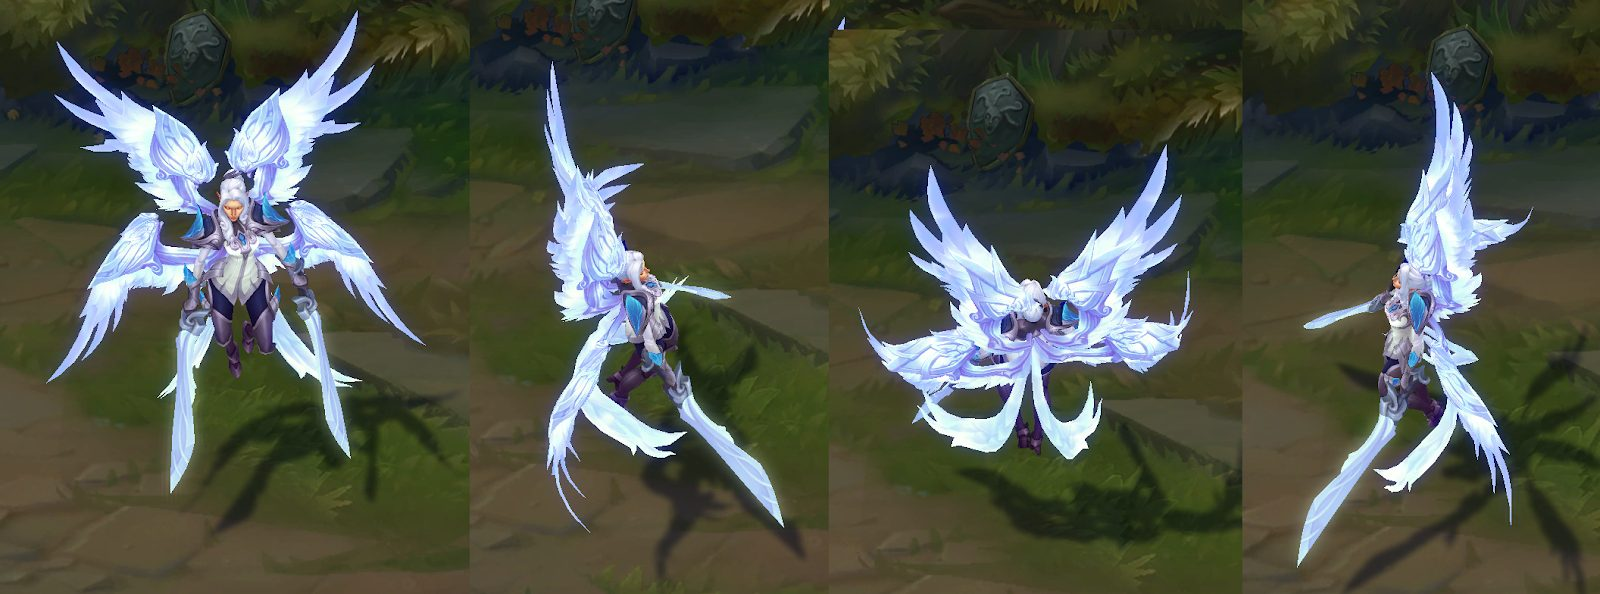 silver kayle animation